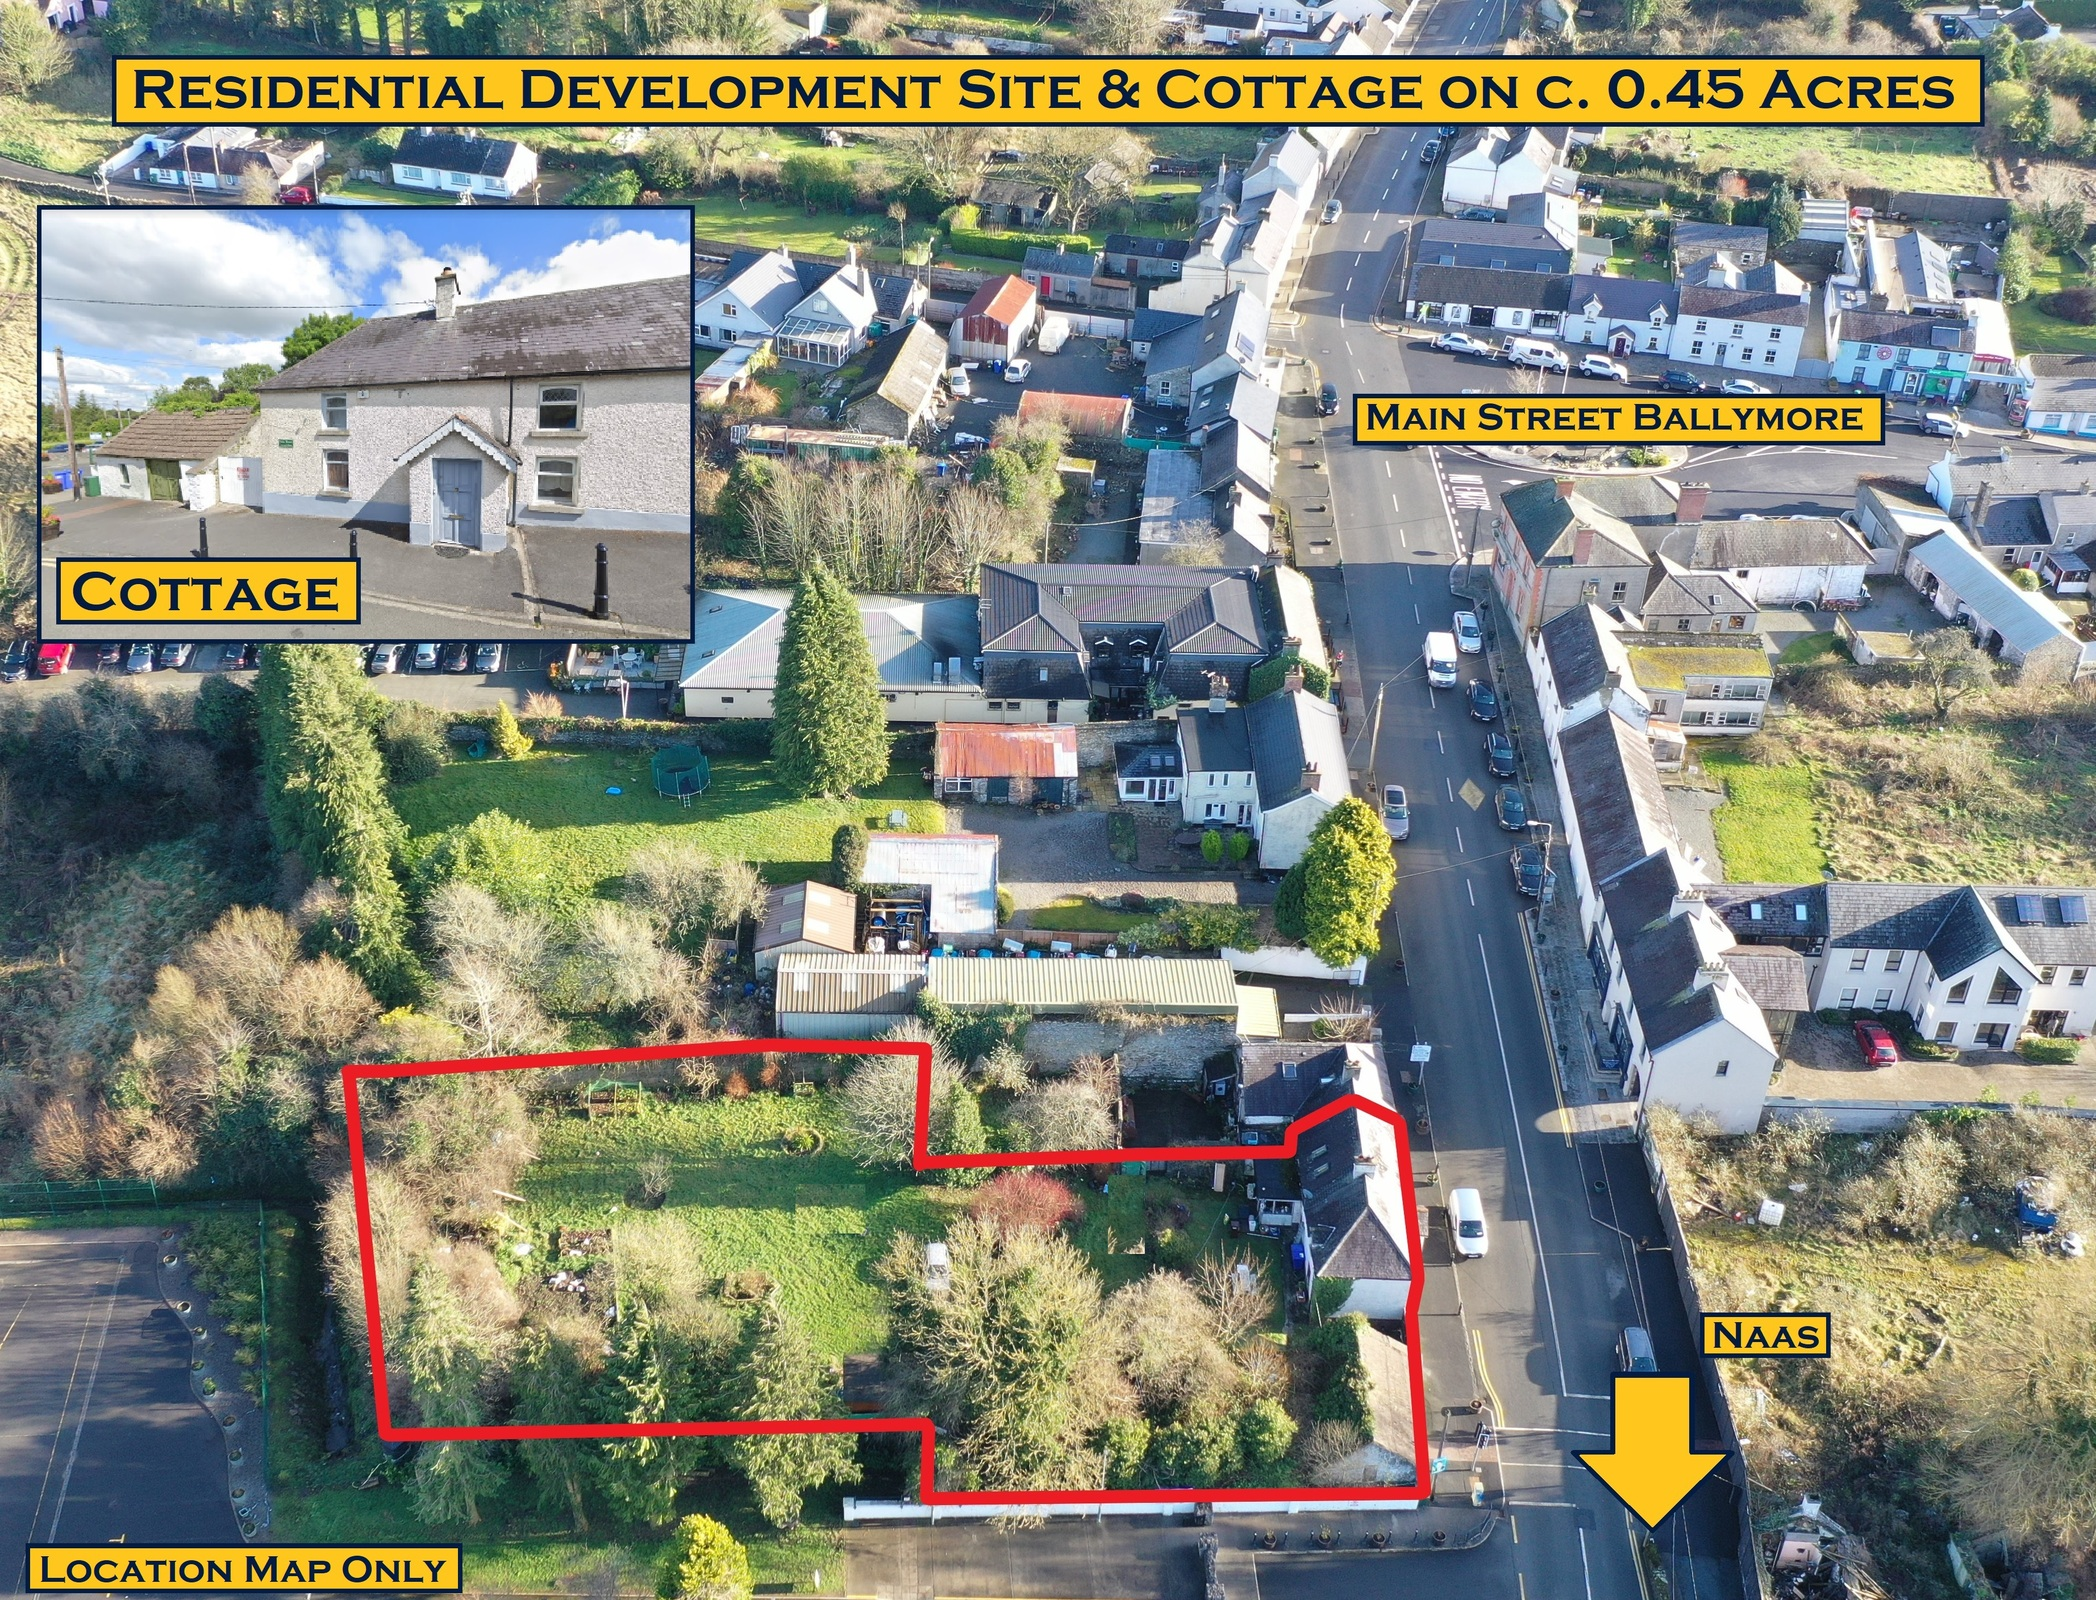 Residence, Cottage & Development Site, Ballymore Eustace, Co. Kildare